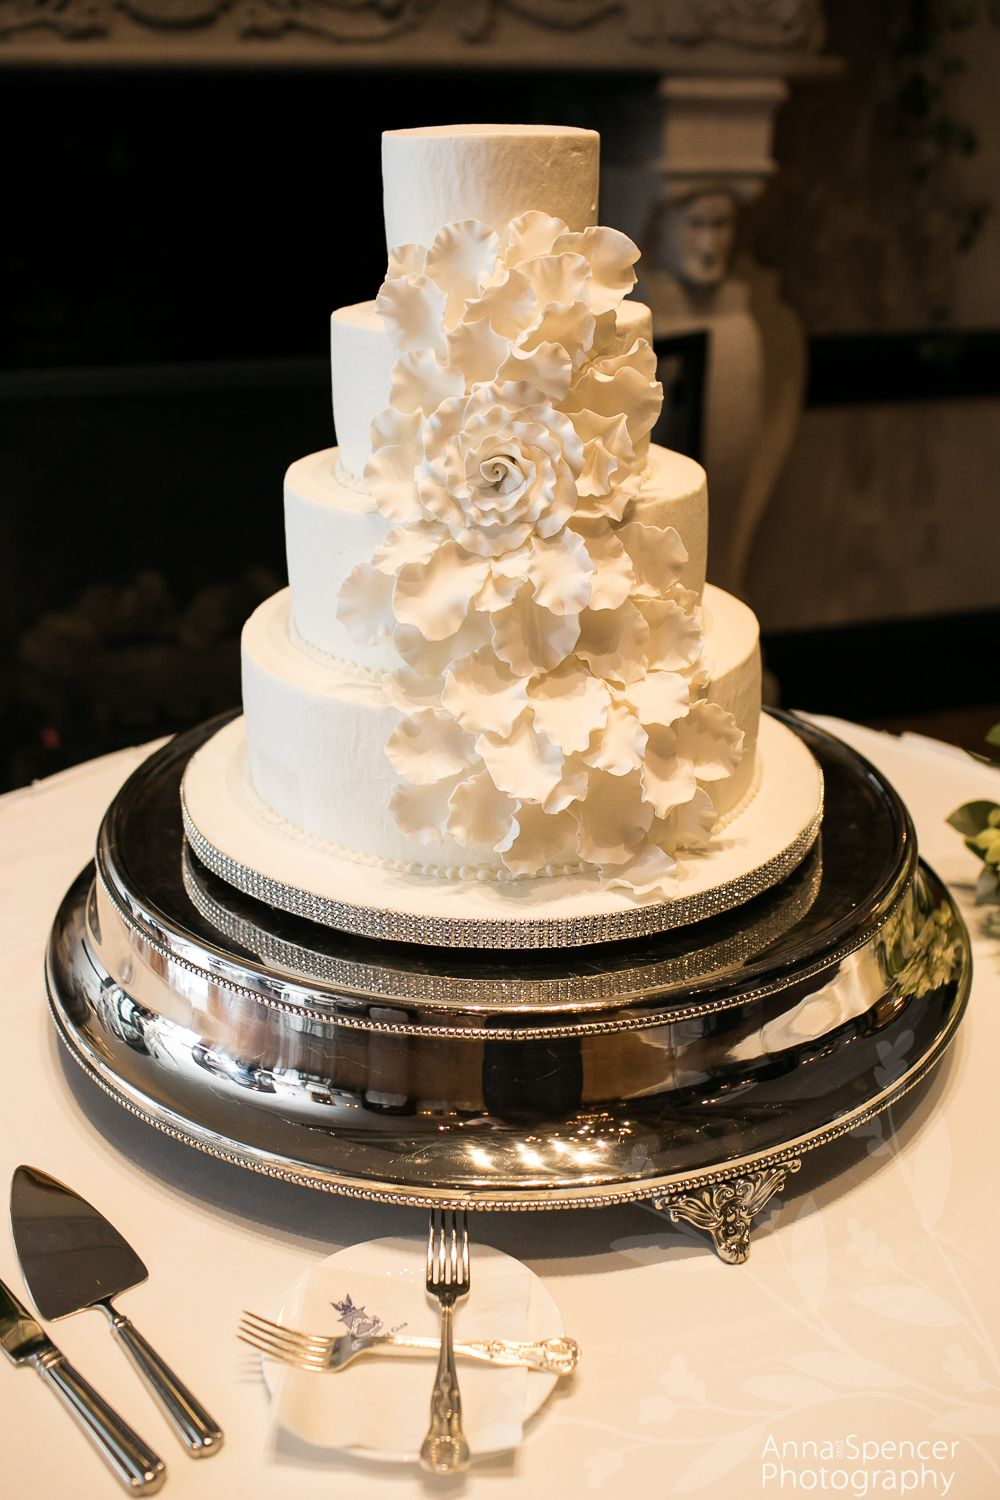 Wedding Cake With Large Fl Pattern By Clic Cheesecakes And Cakes Bakery